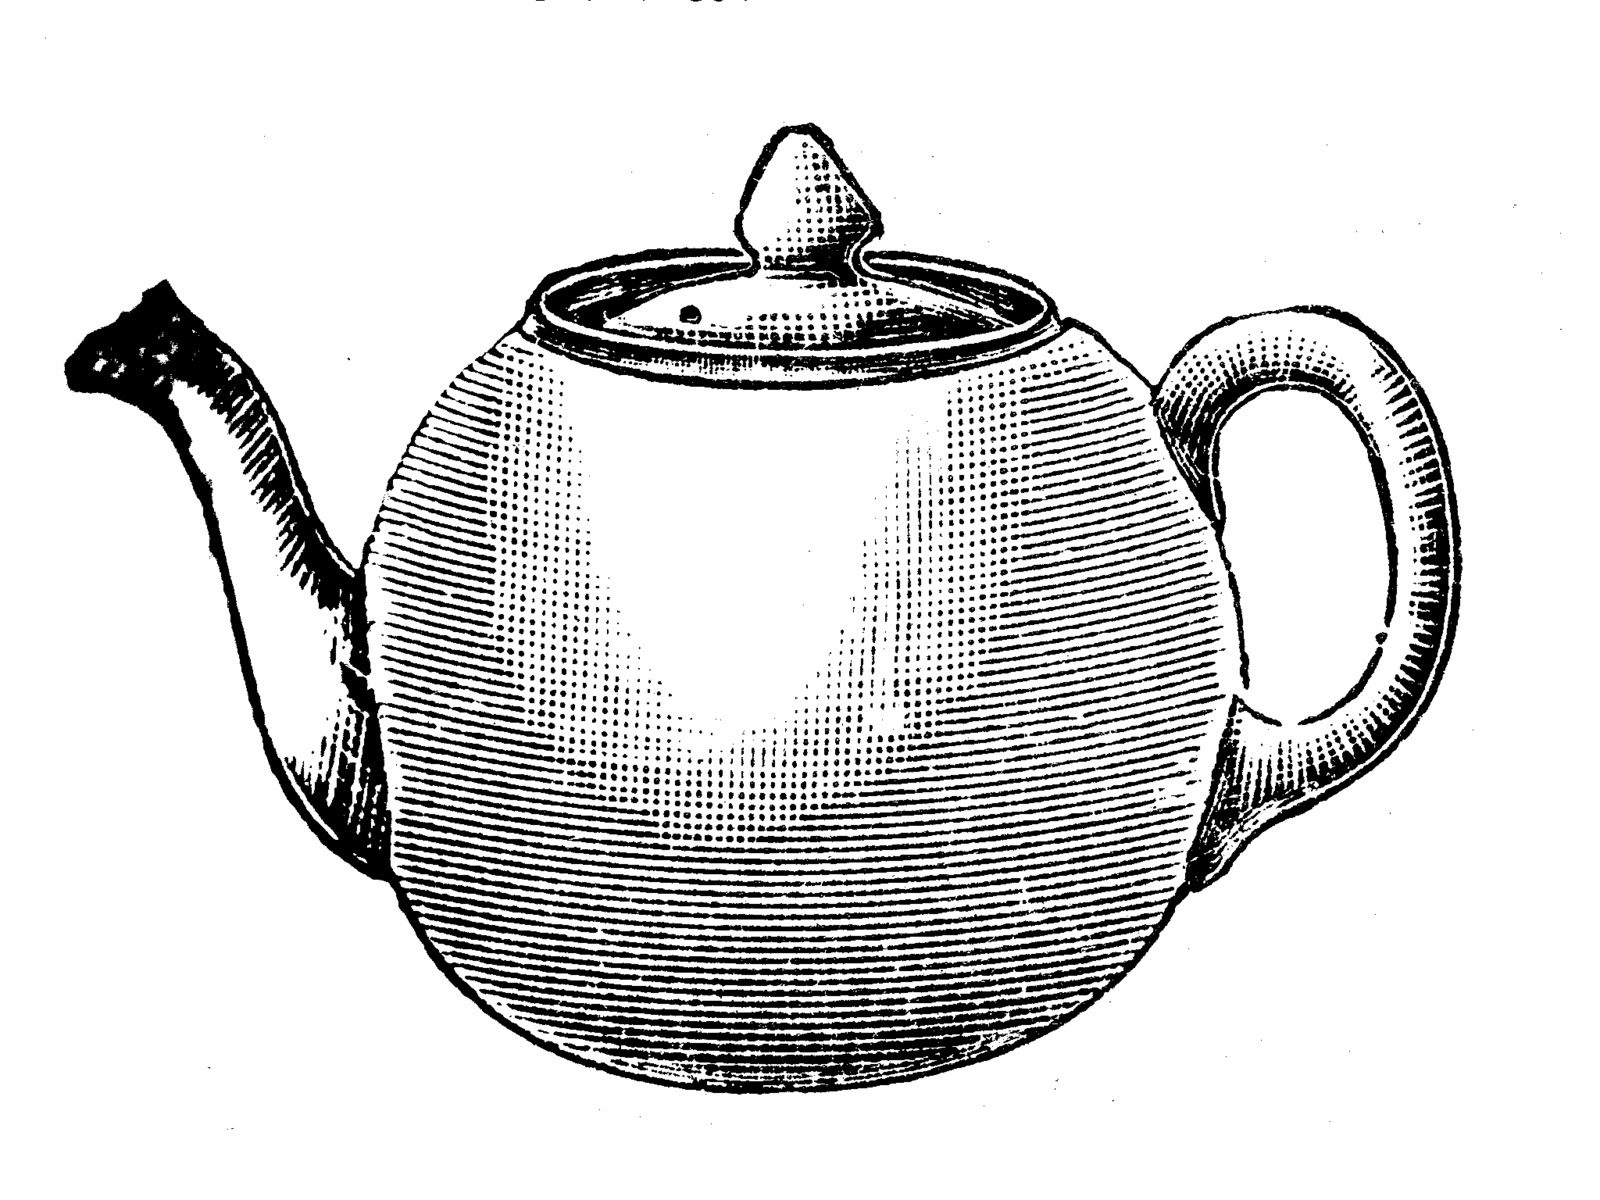 Fancy Teacup Clipart - Topplabs.org •